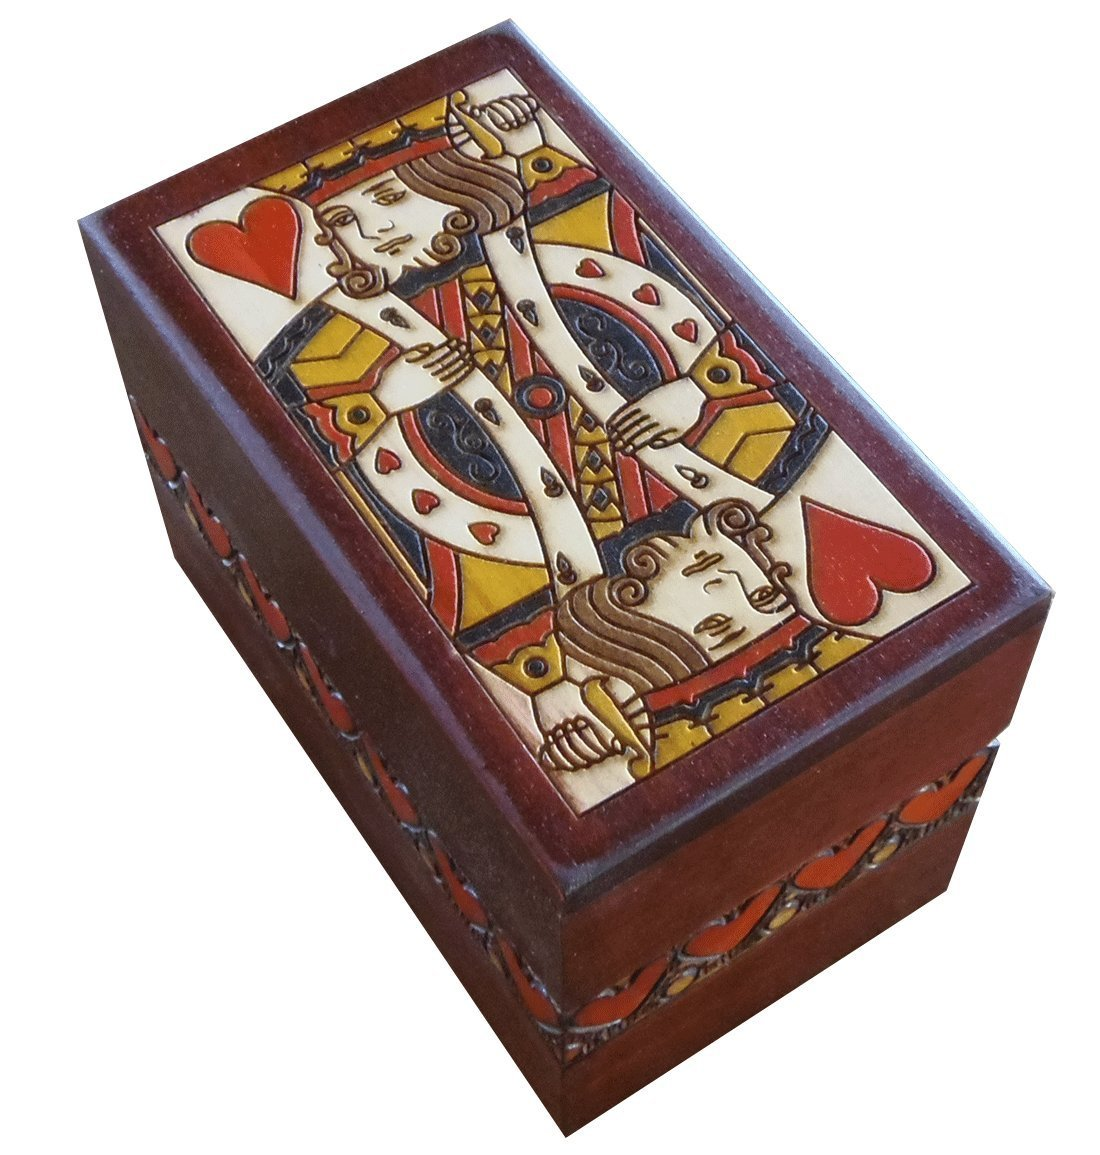 Card Box Holder with King Of Hearts design